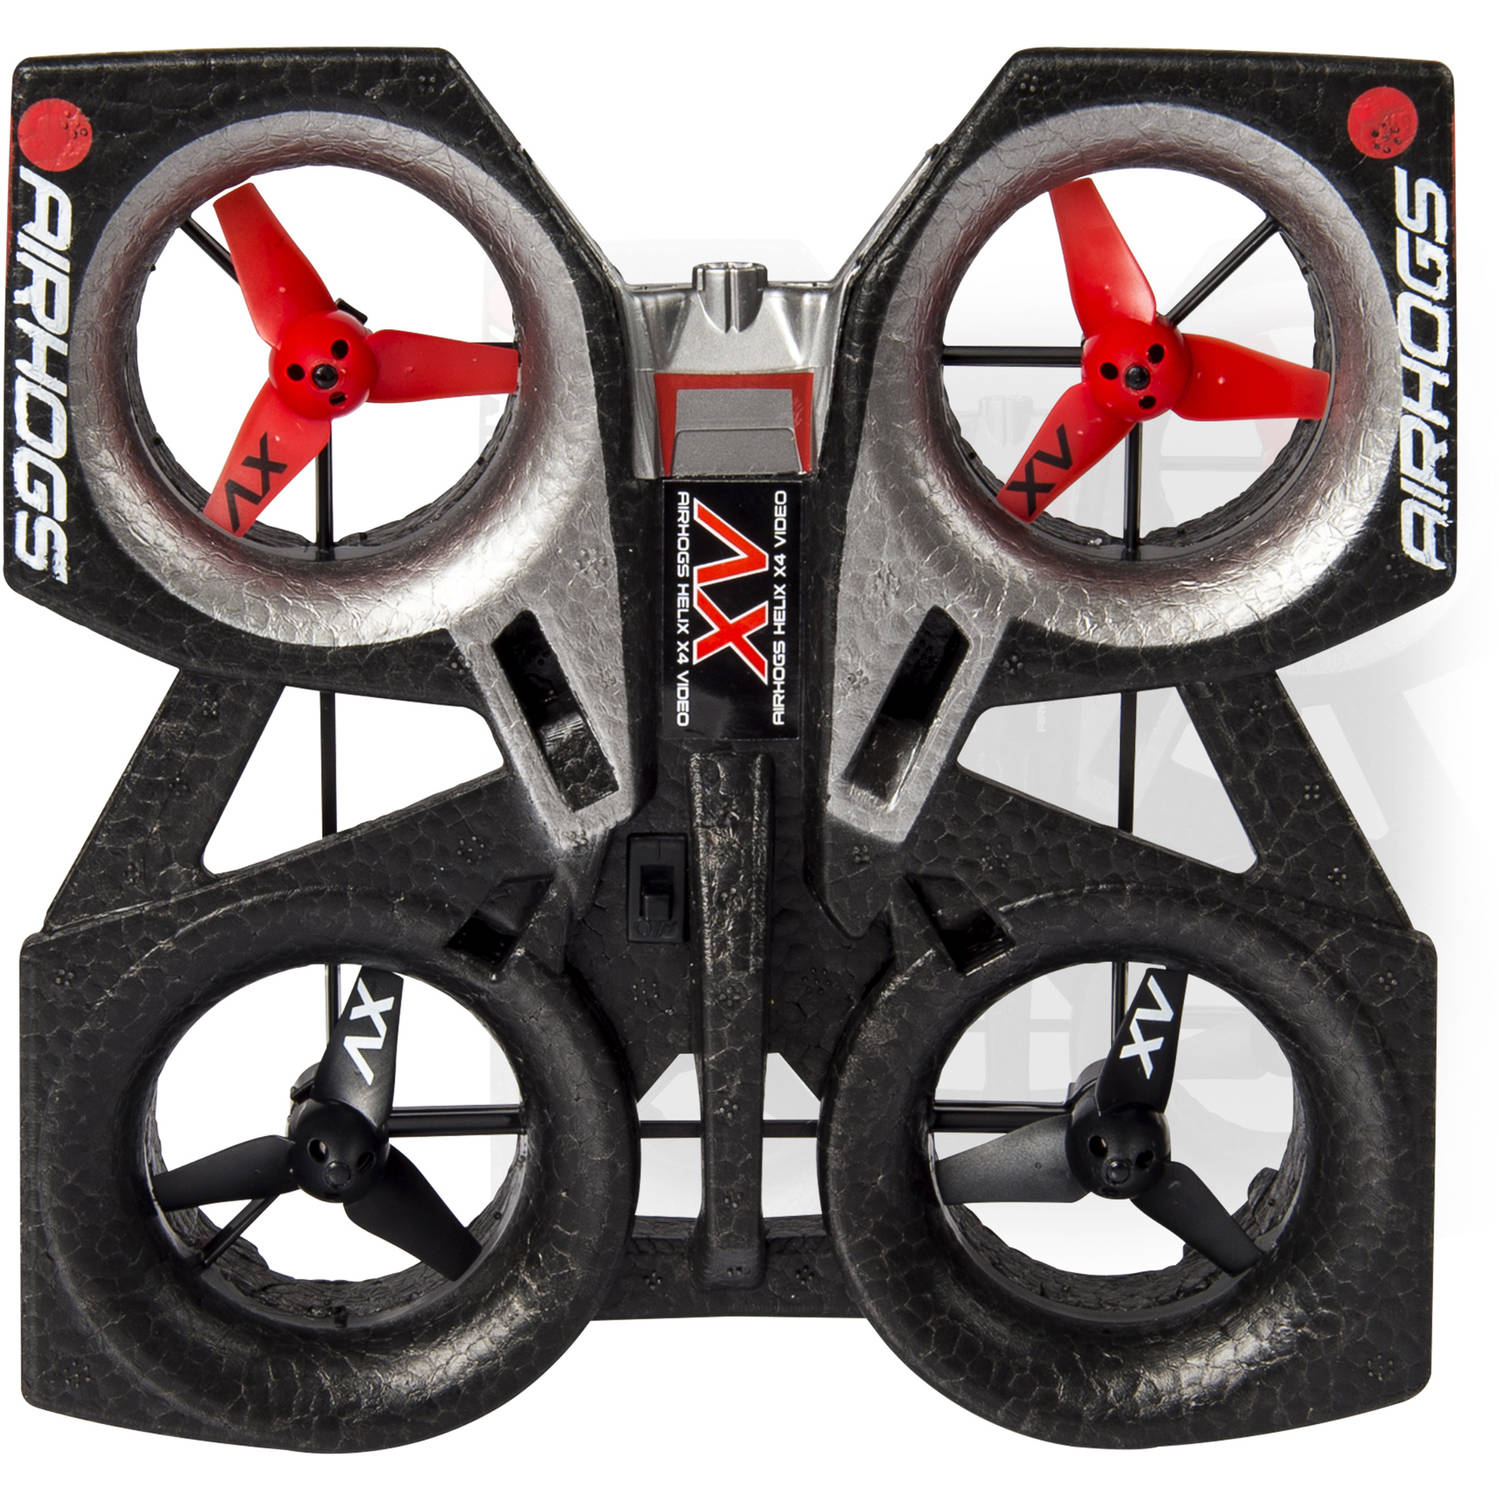 Air Hogs Helix Video Drone